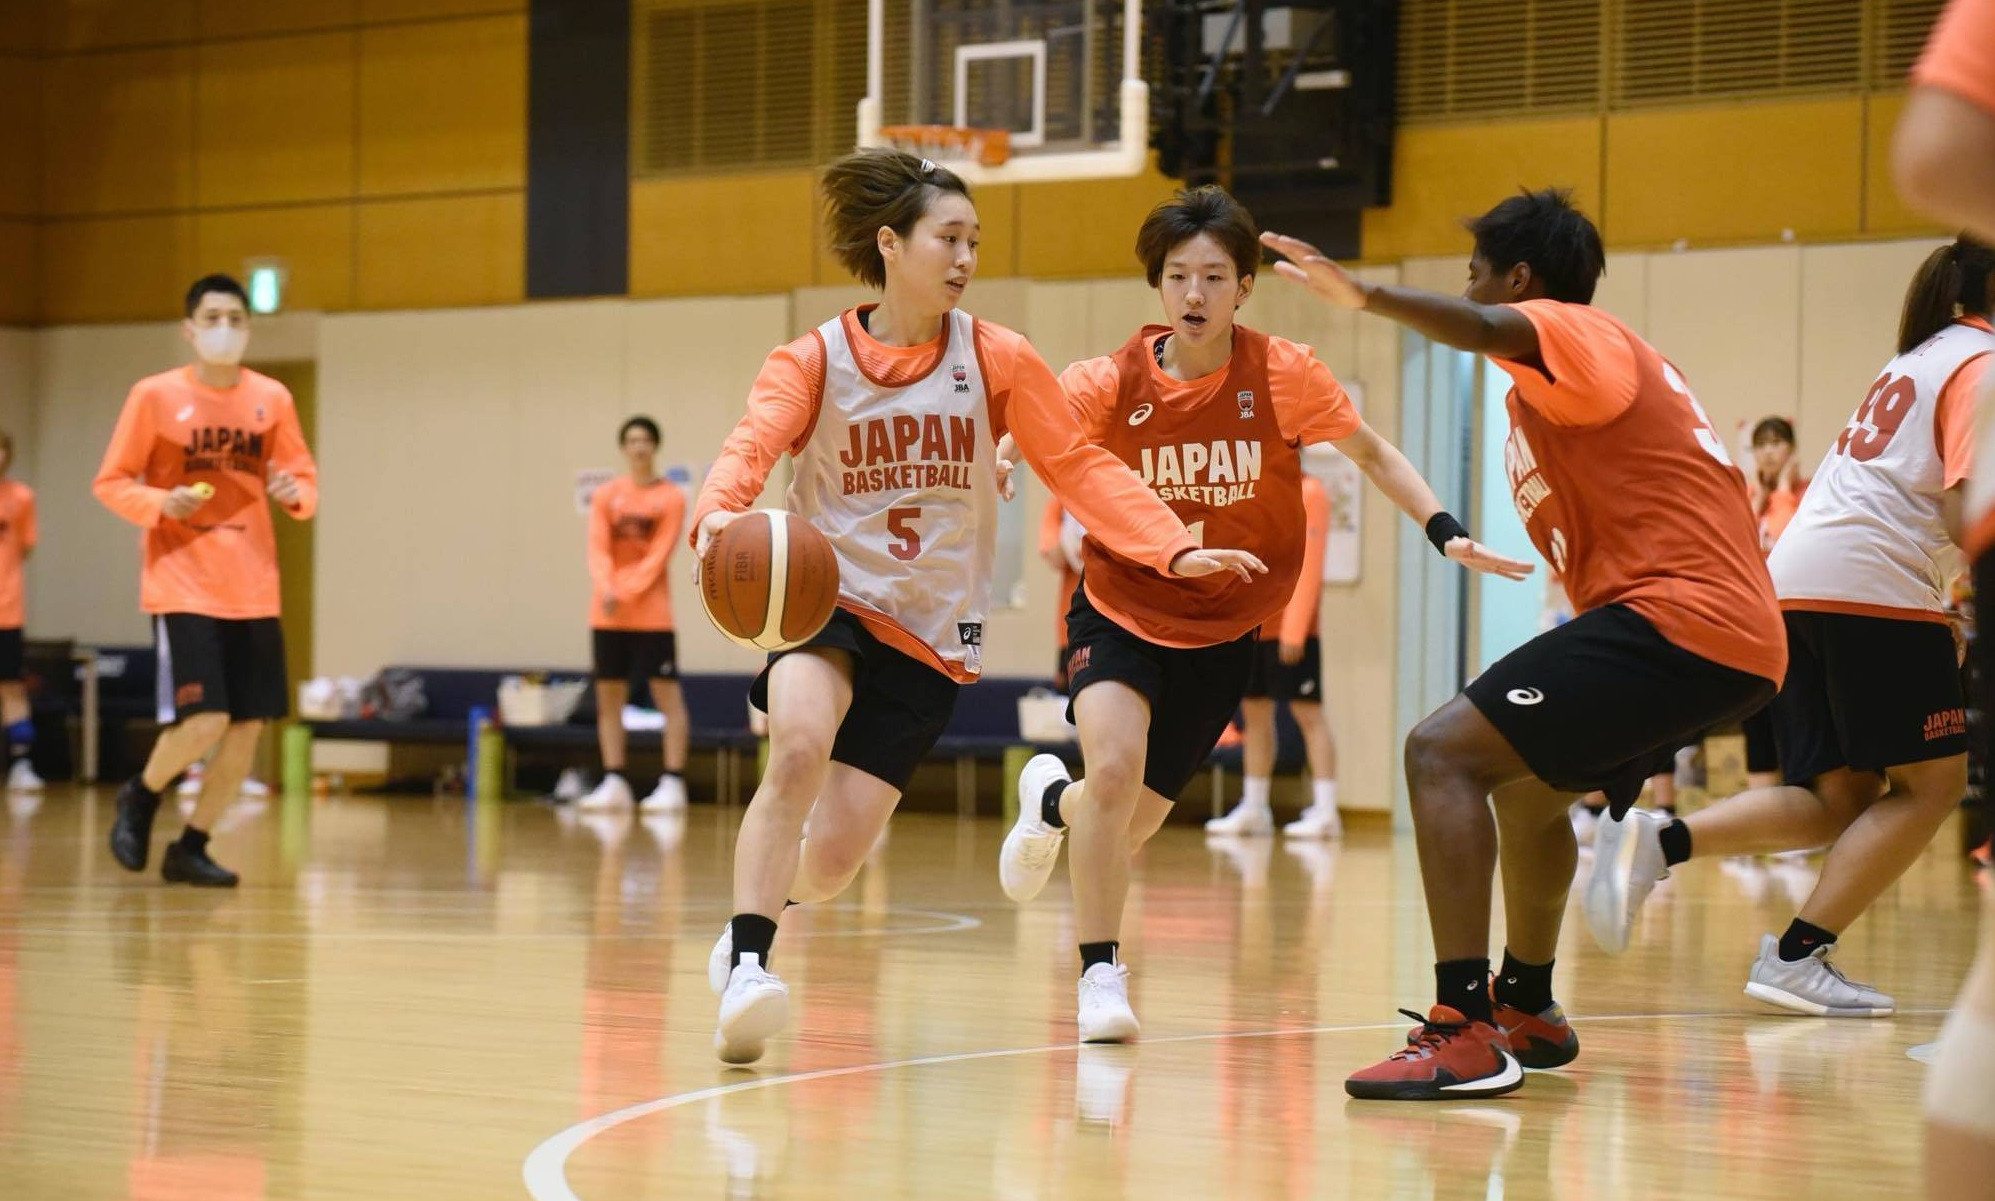 Guard Saori Miyazaki dribbles during Japan's training camp ©Japan Basketball Association